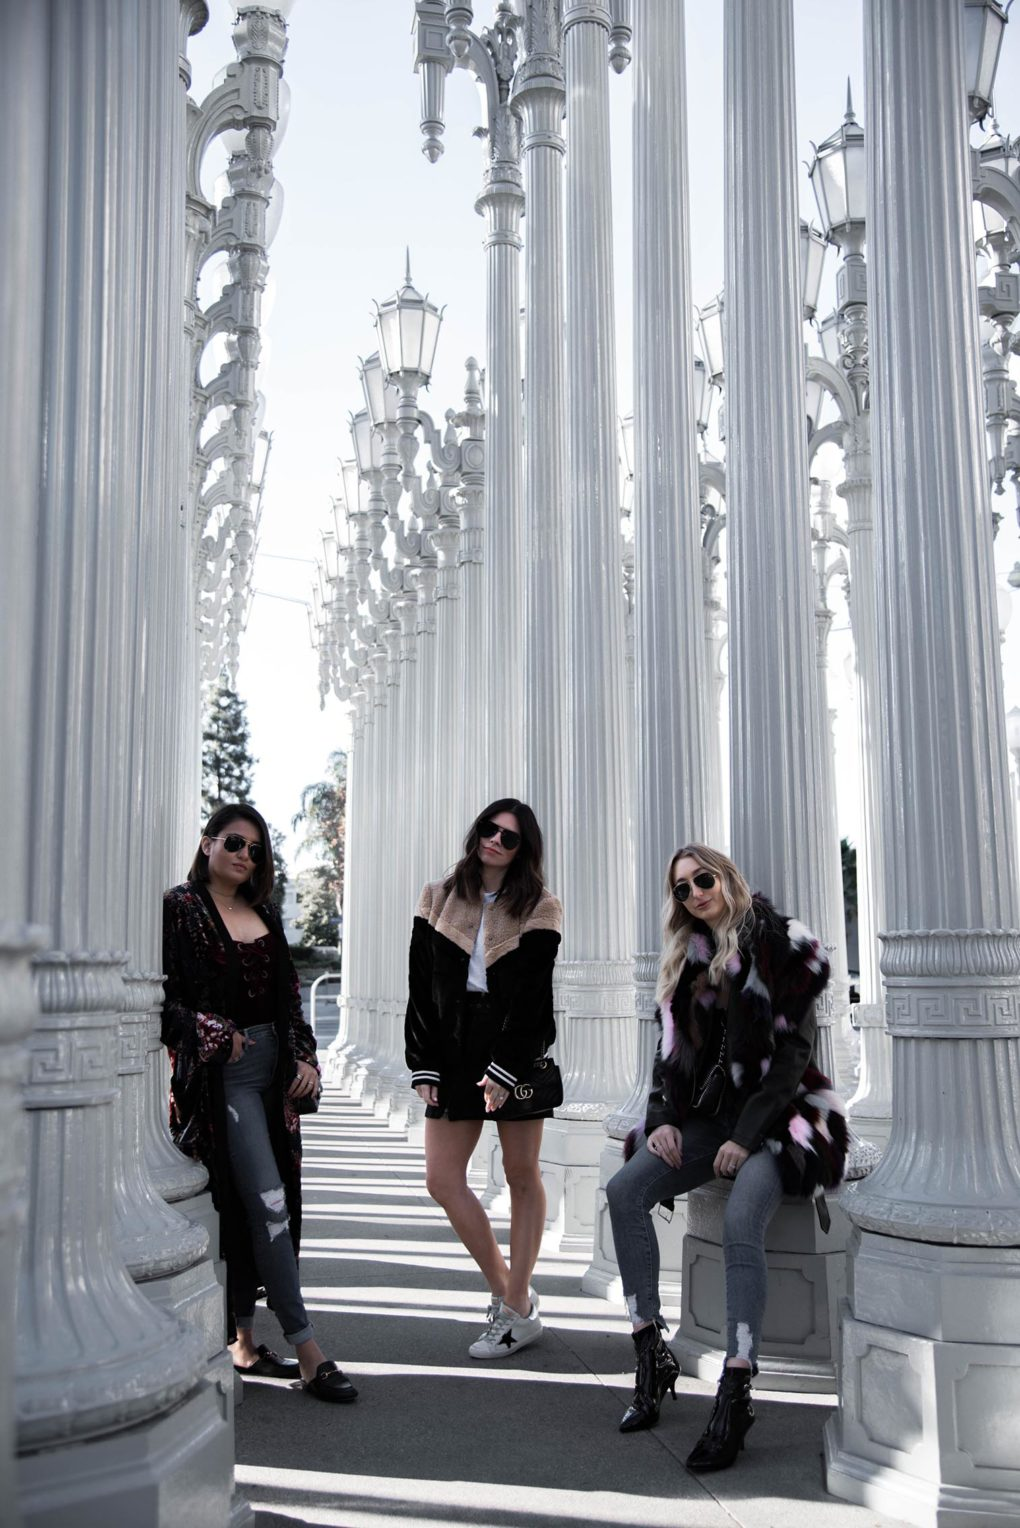 Best Places to Take Photos Los Angeles, LACMA